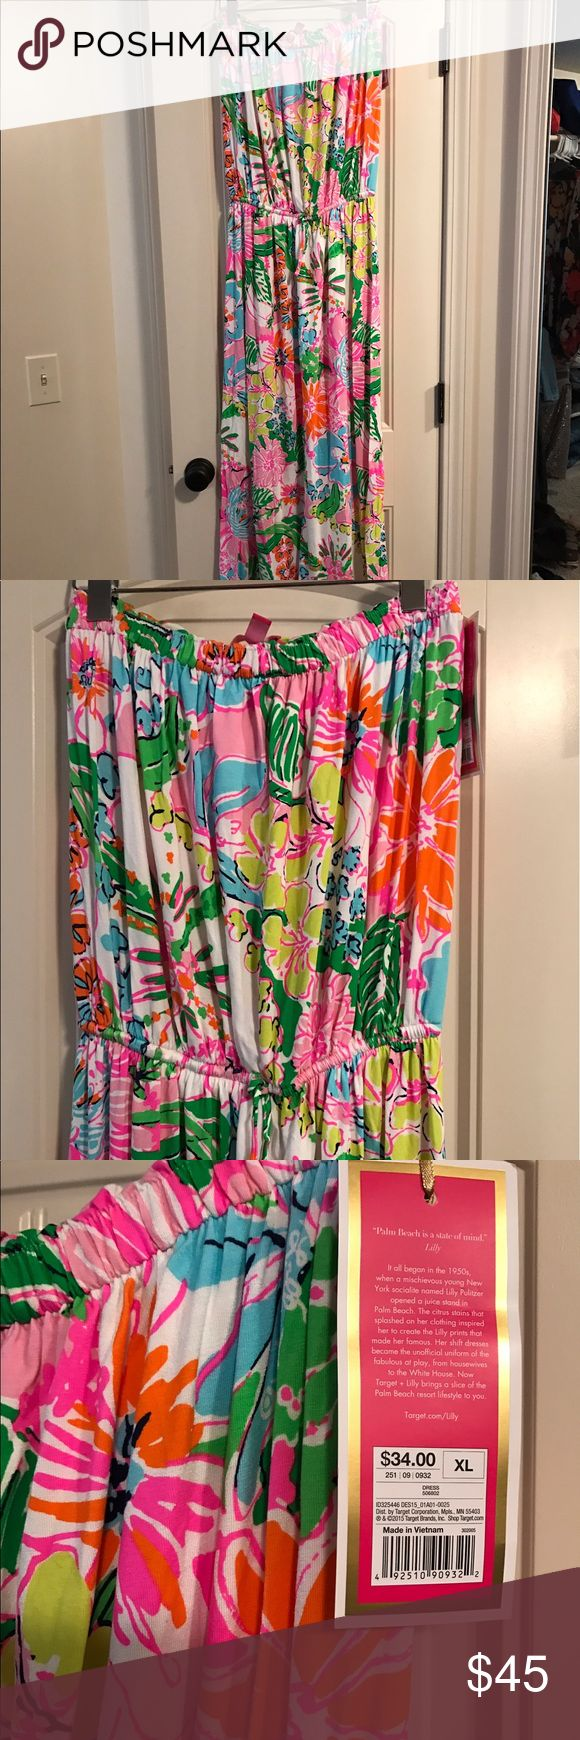 Lily Pulitzer for Target Maxi Dress NWT Lily Pulitzer for Target Maxi Dress NWT. Built in bra, stretchy fabric that hangs nicely. Size XL Lilly Pulitzer for Target Dresses Maxi